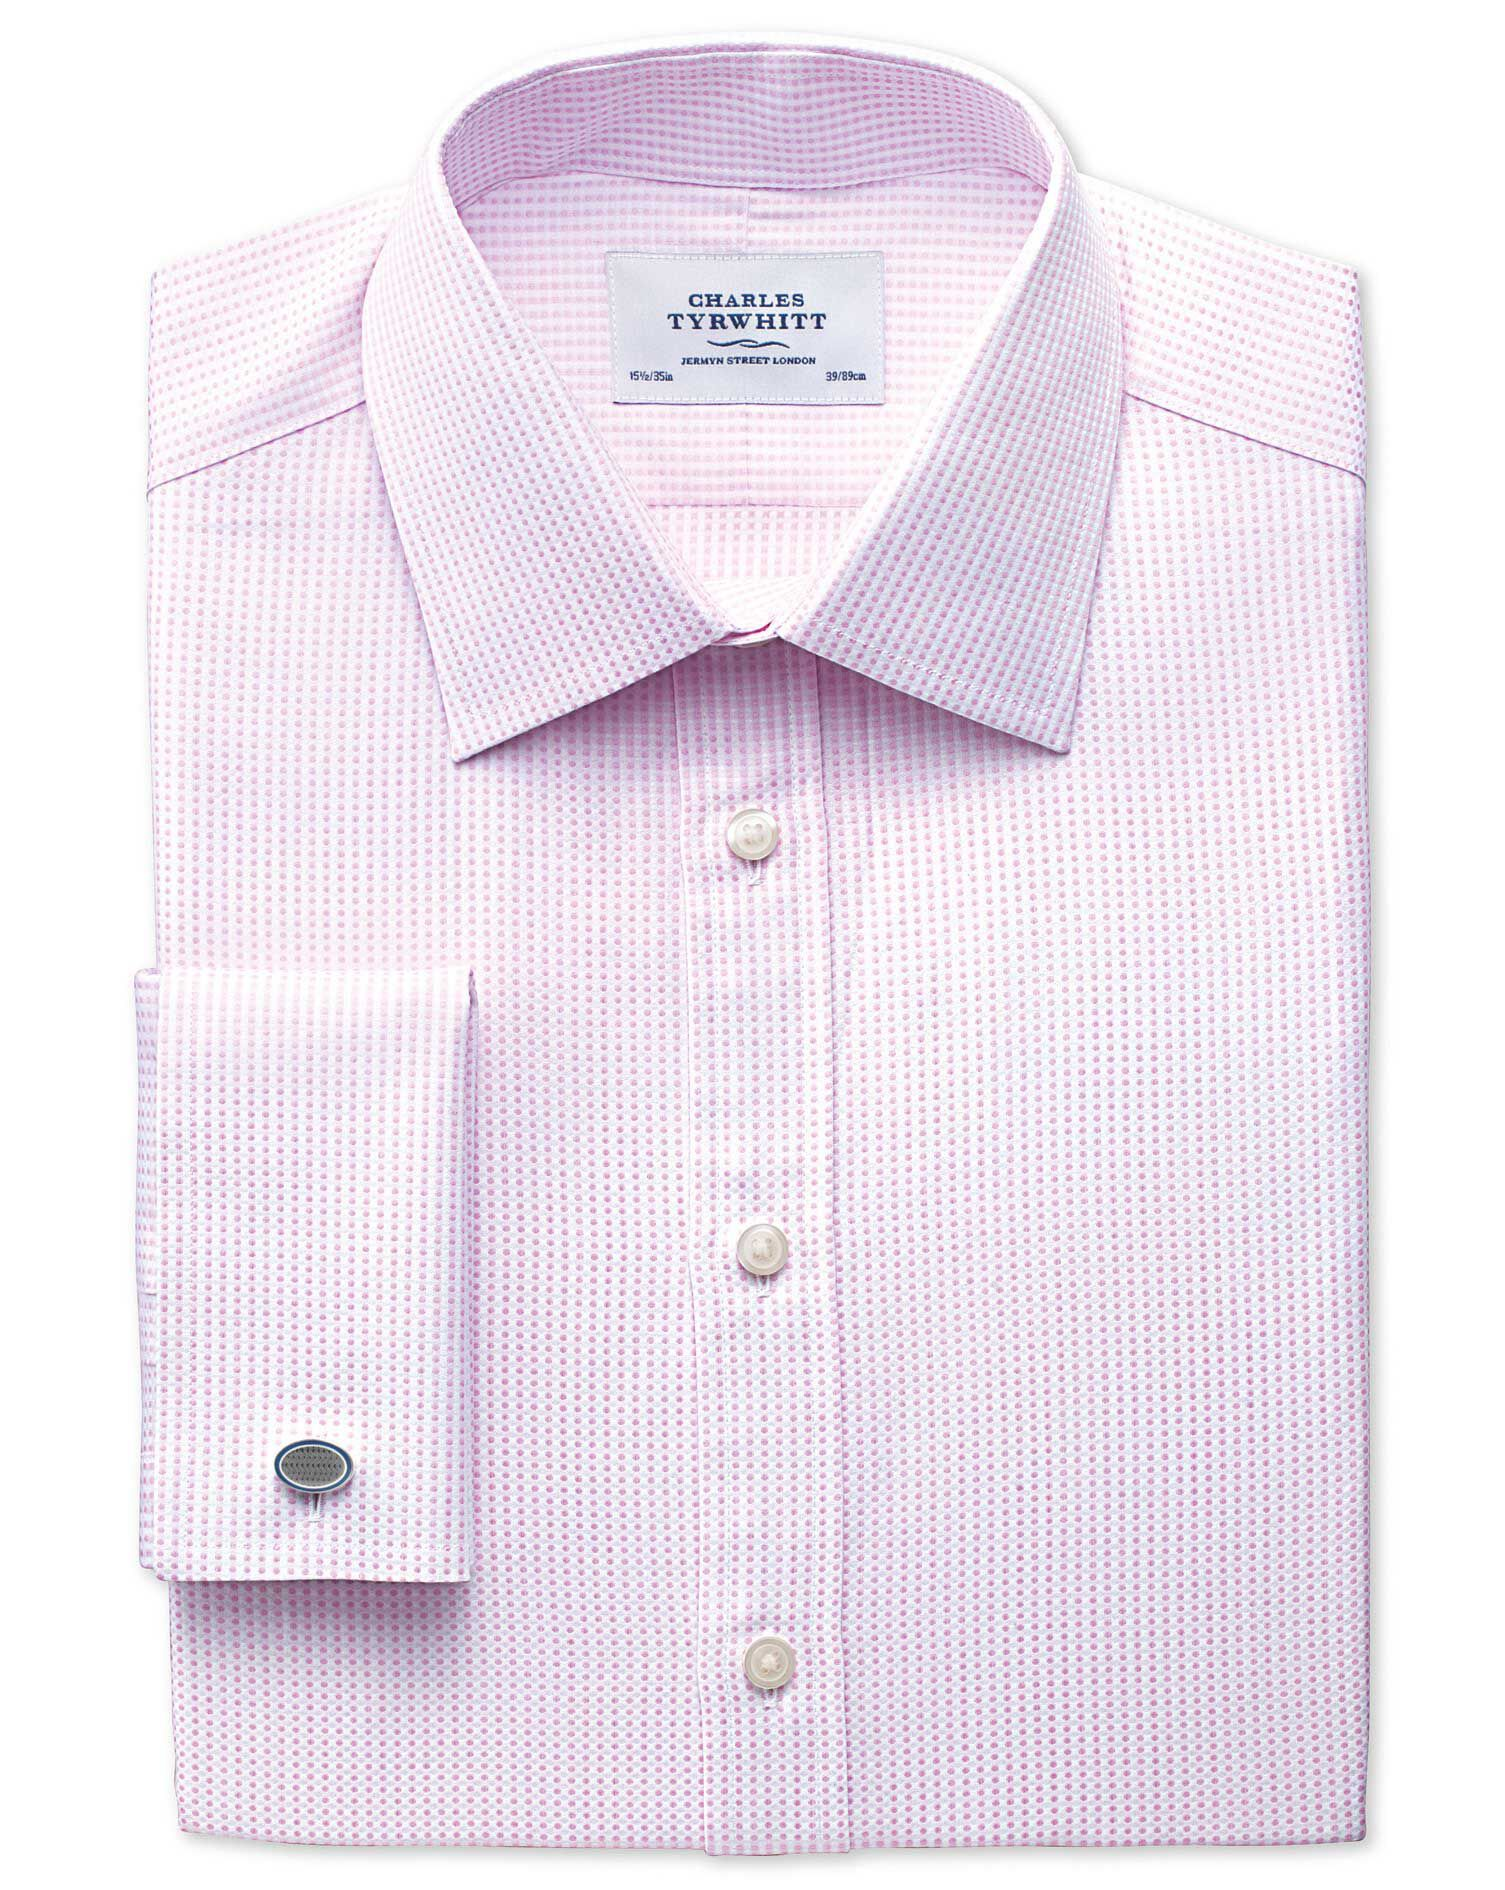 Slim Fit Pima Cotton Double-Faced Light Pink Formal Shirt Double Cuff Size 17/38 by Charles Tyrwhitt